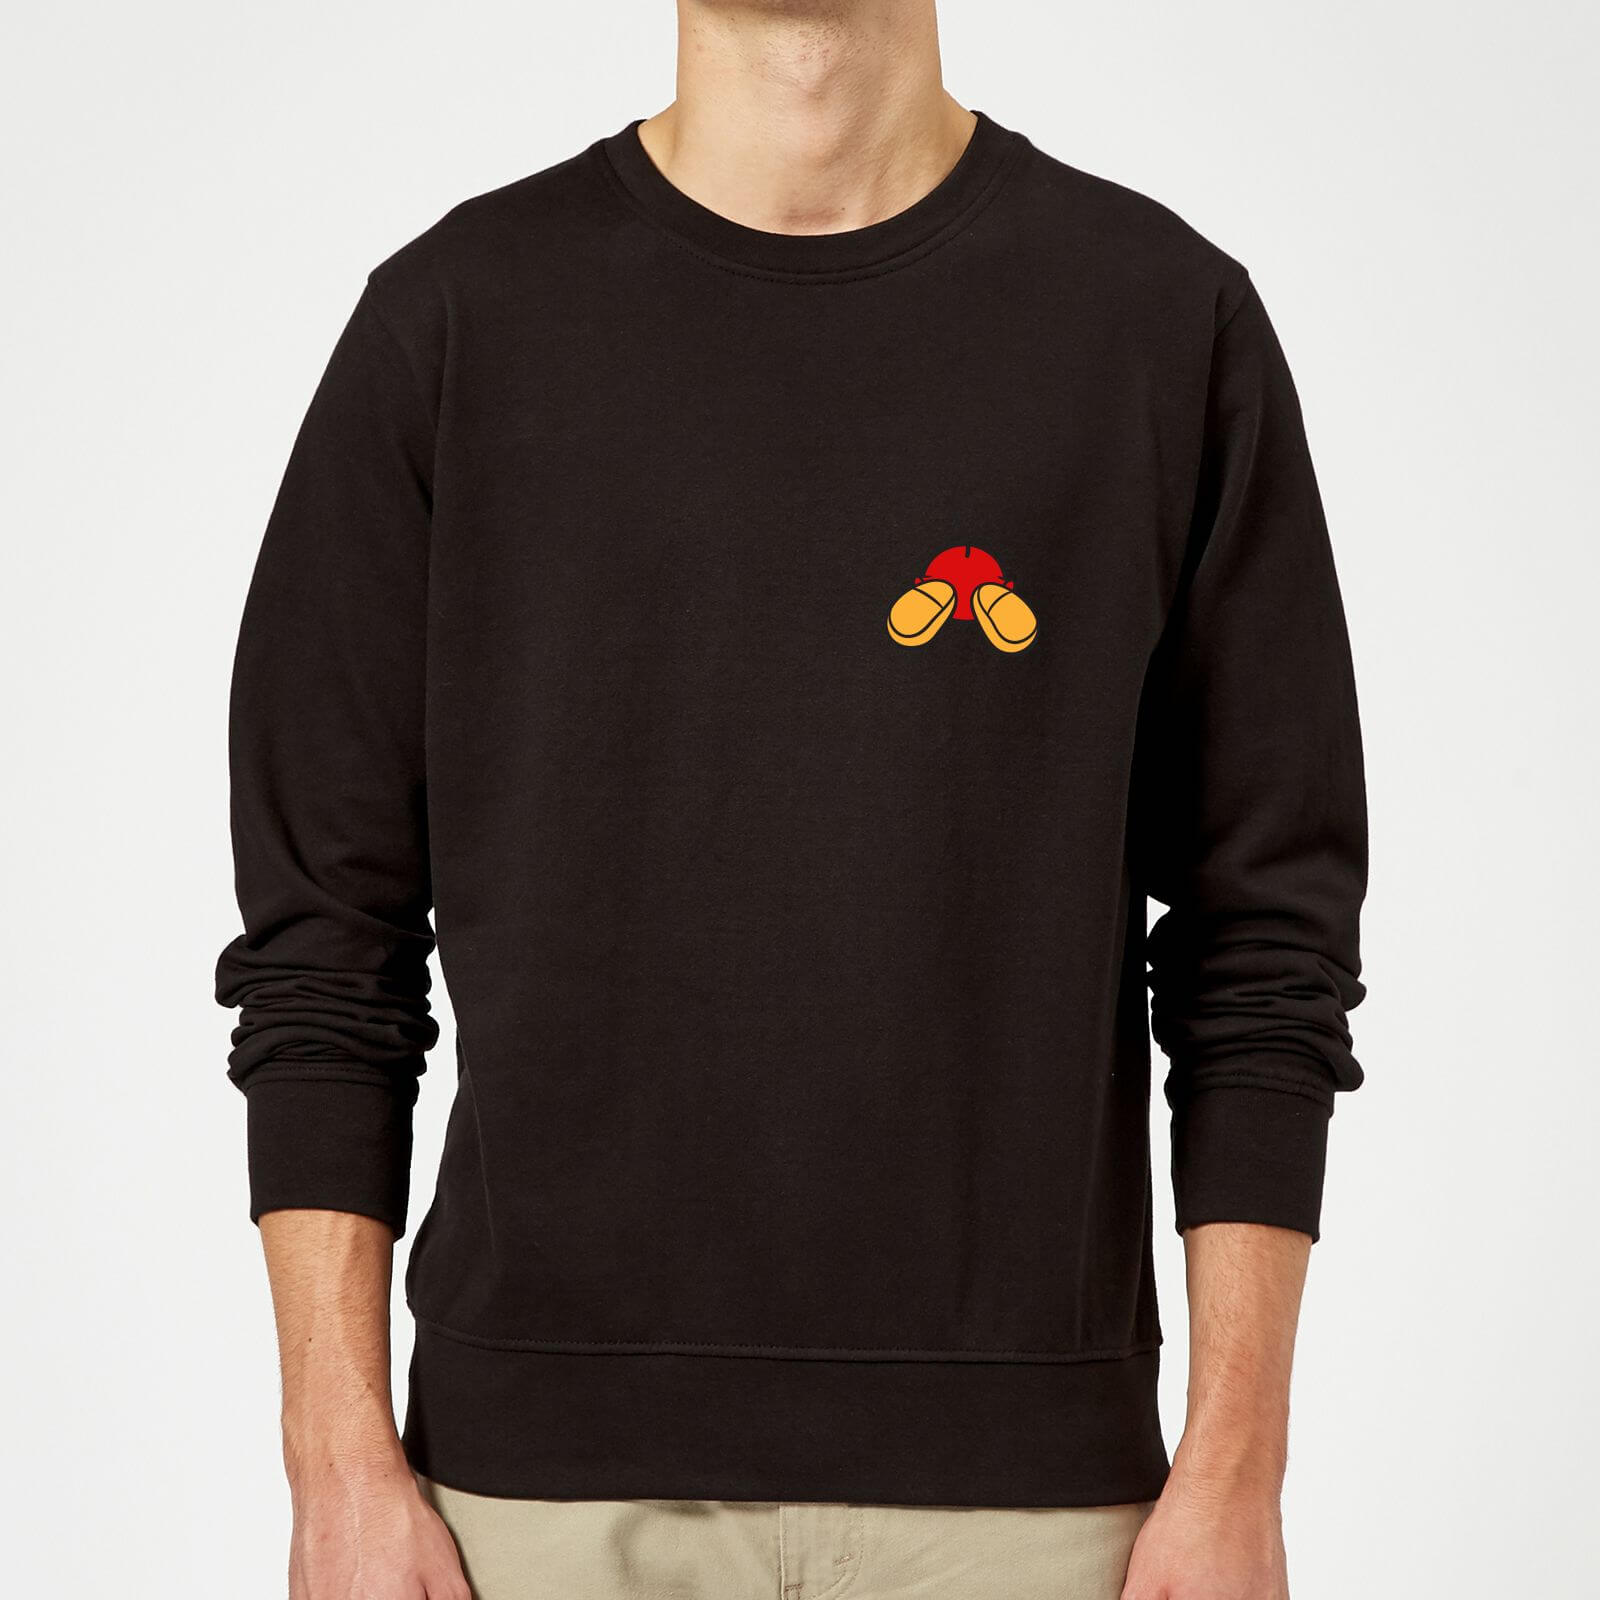 Disney Mickey Mouse Backside Sweatshirt - Schwarz - L - Schwarz